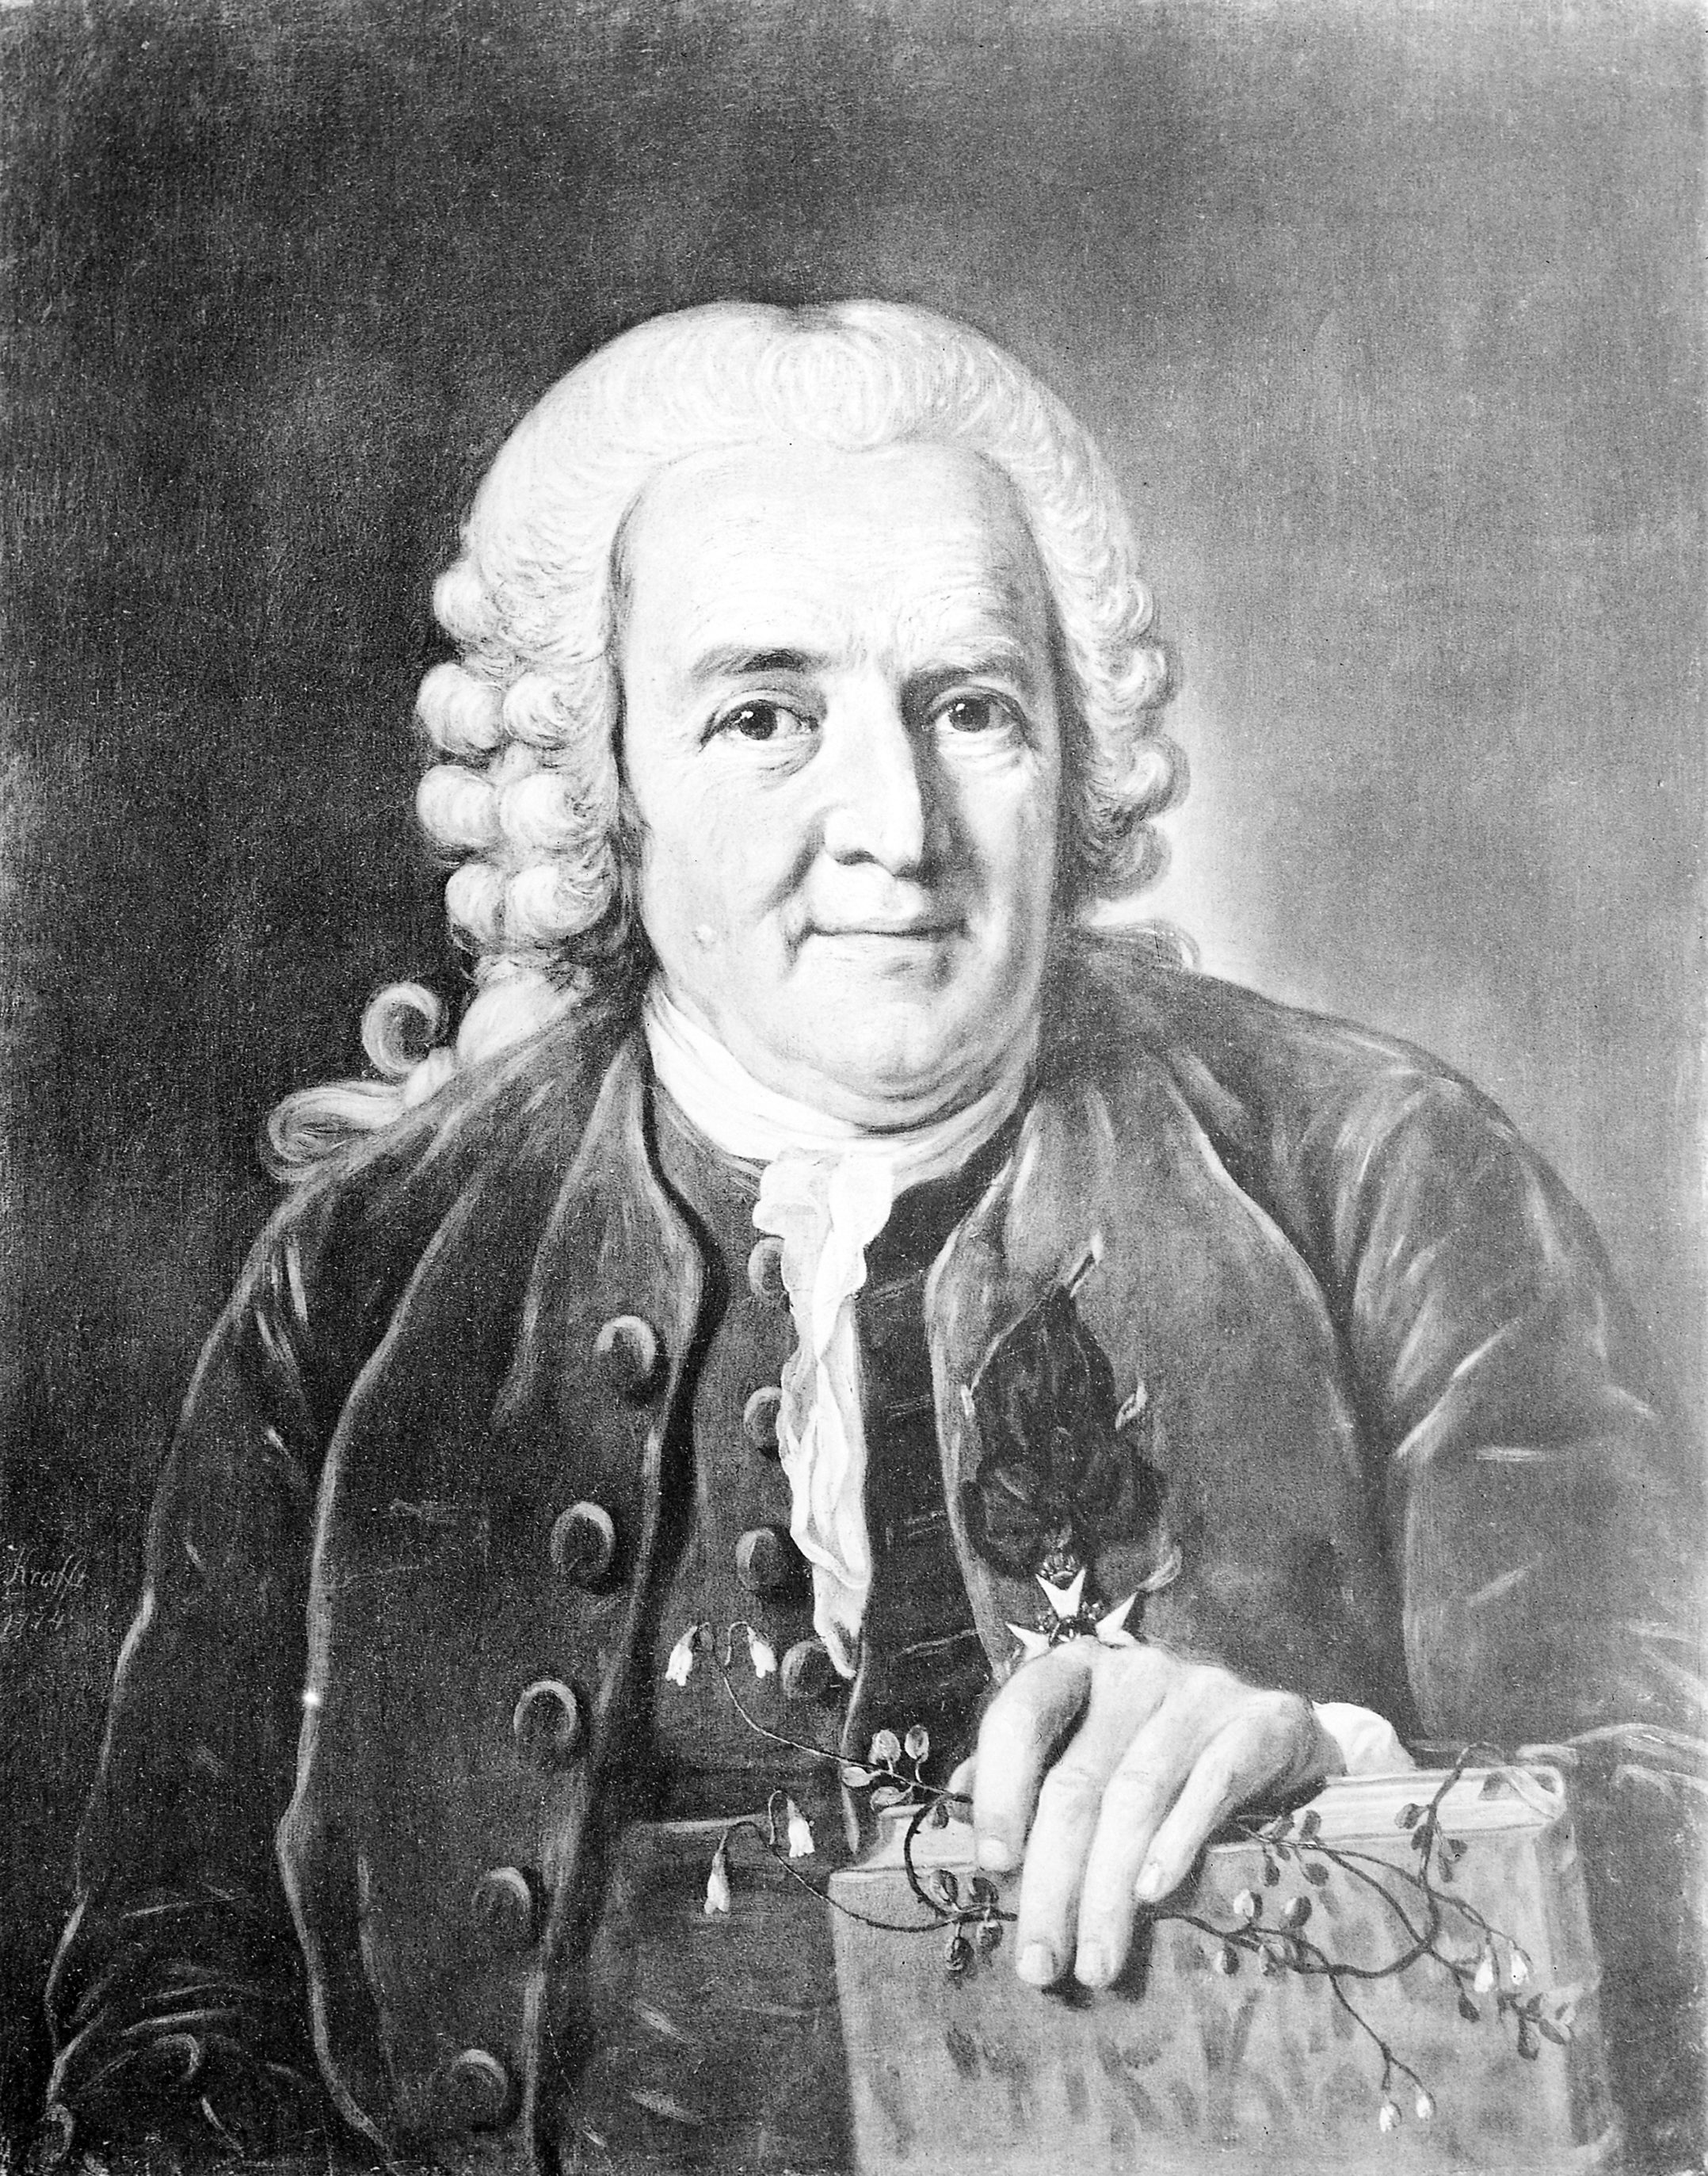 Black and white portraits of Carl Linnaeus facing the artist. His left hand is propped on the top of an upright leather-bound book.